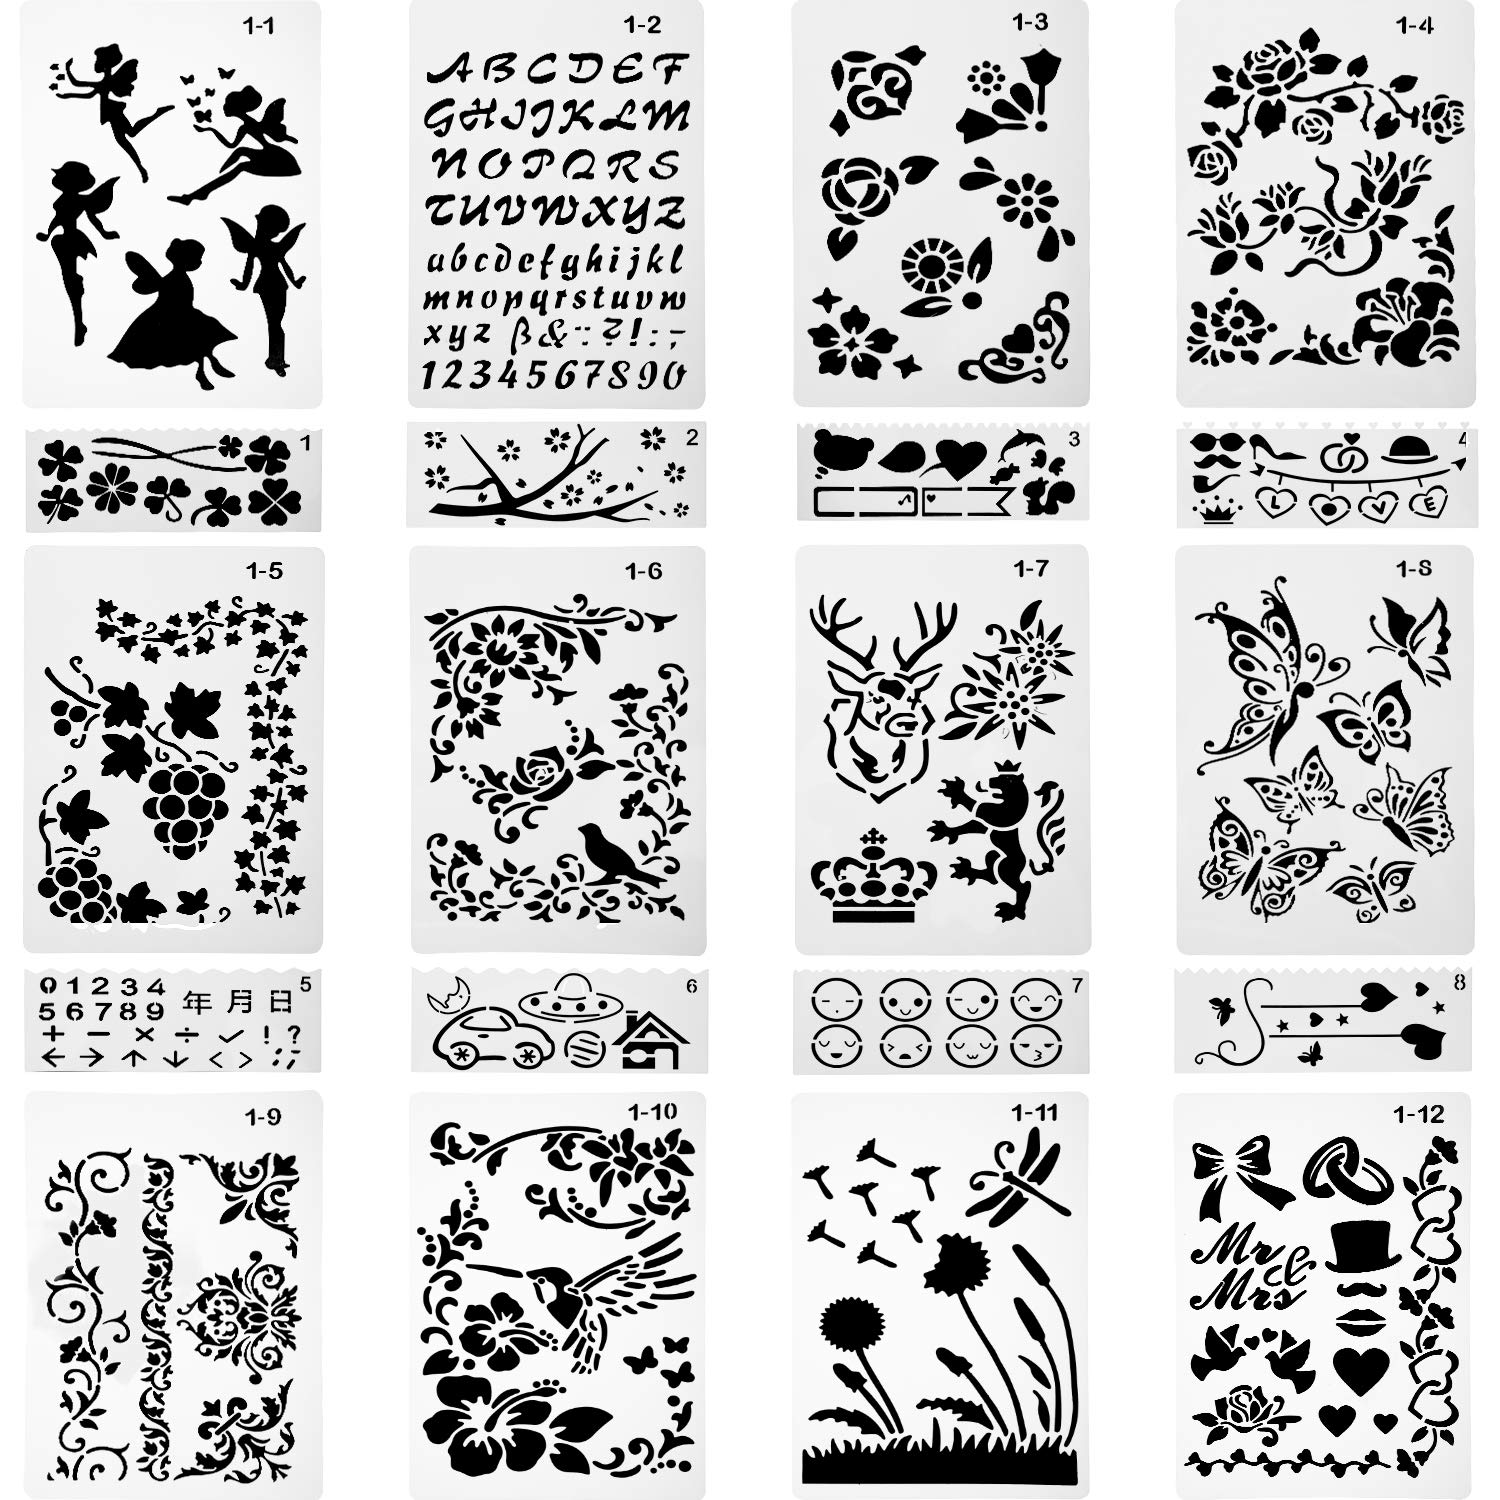 Gejoy 20 Pieces Plastic Painting Stencils, Templates for Drawing, Painting Tools for Kids, Scrapbook, Planner, Bullet Journal, Face, Rock, Wood Painting, Card Making